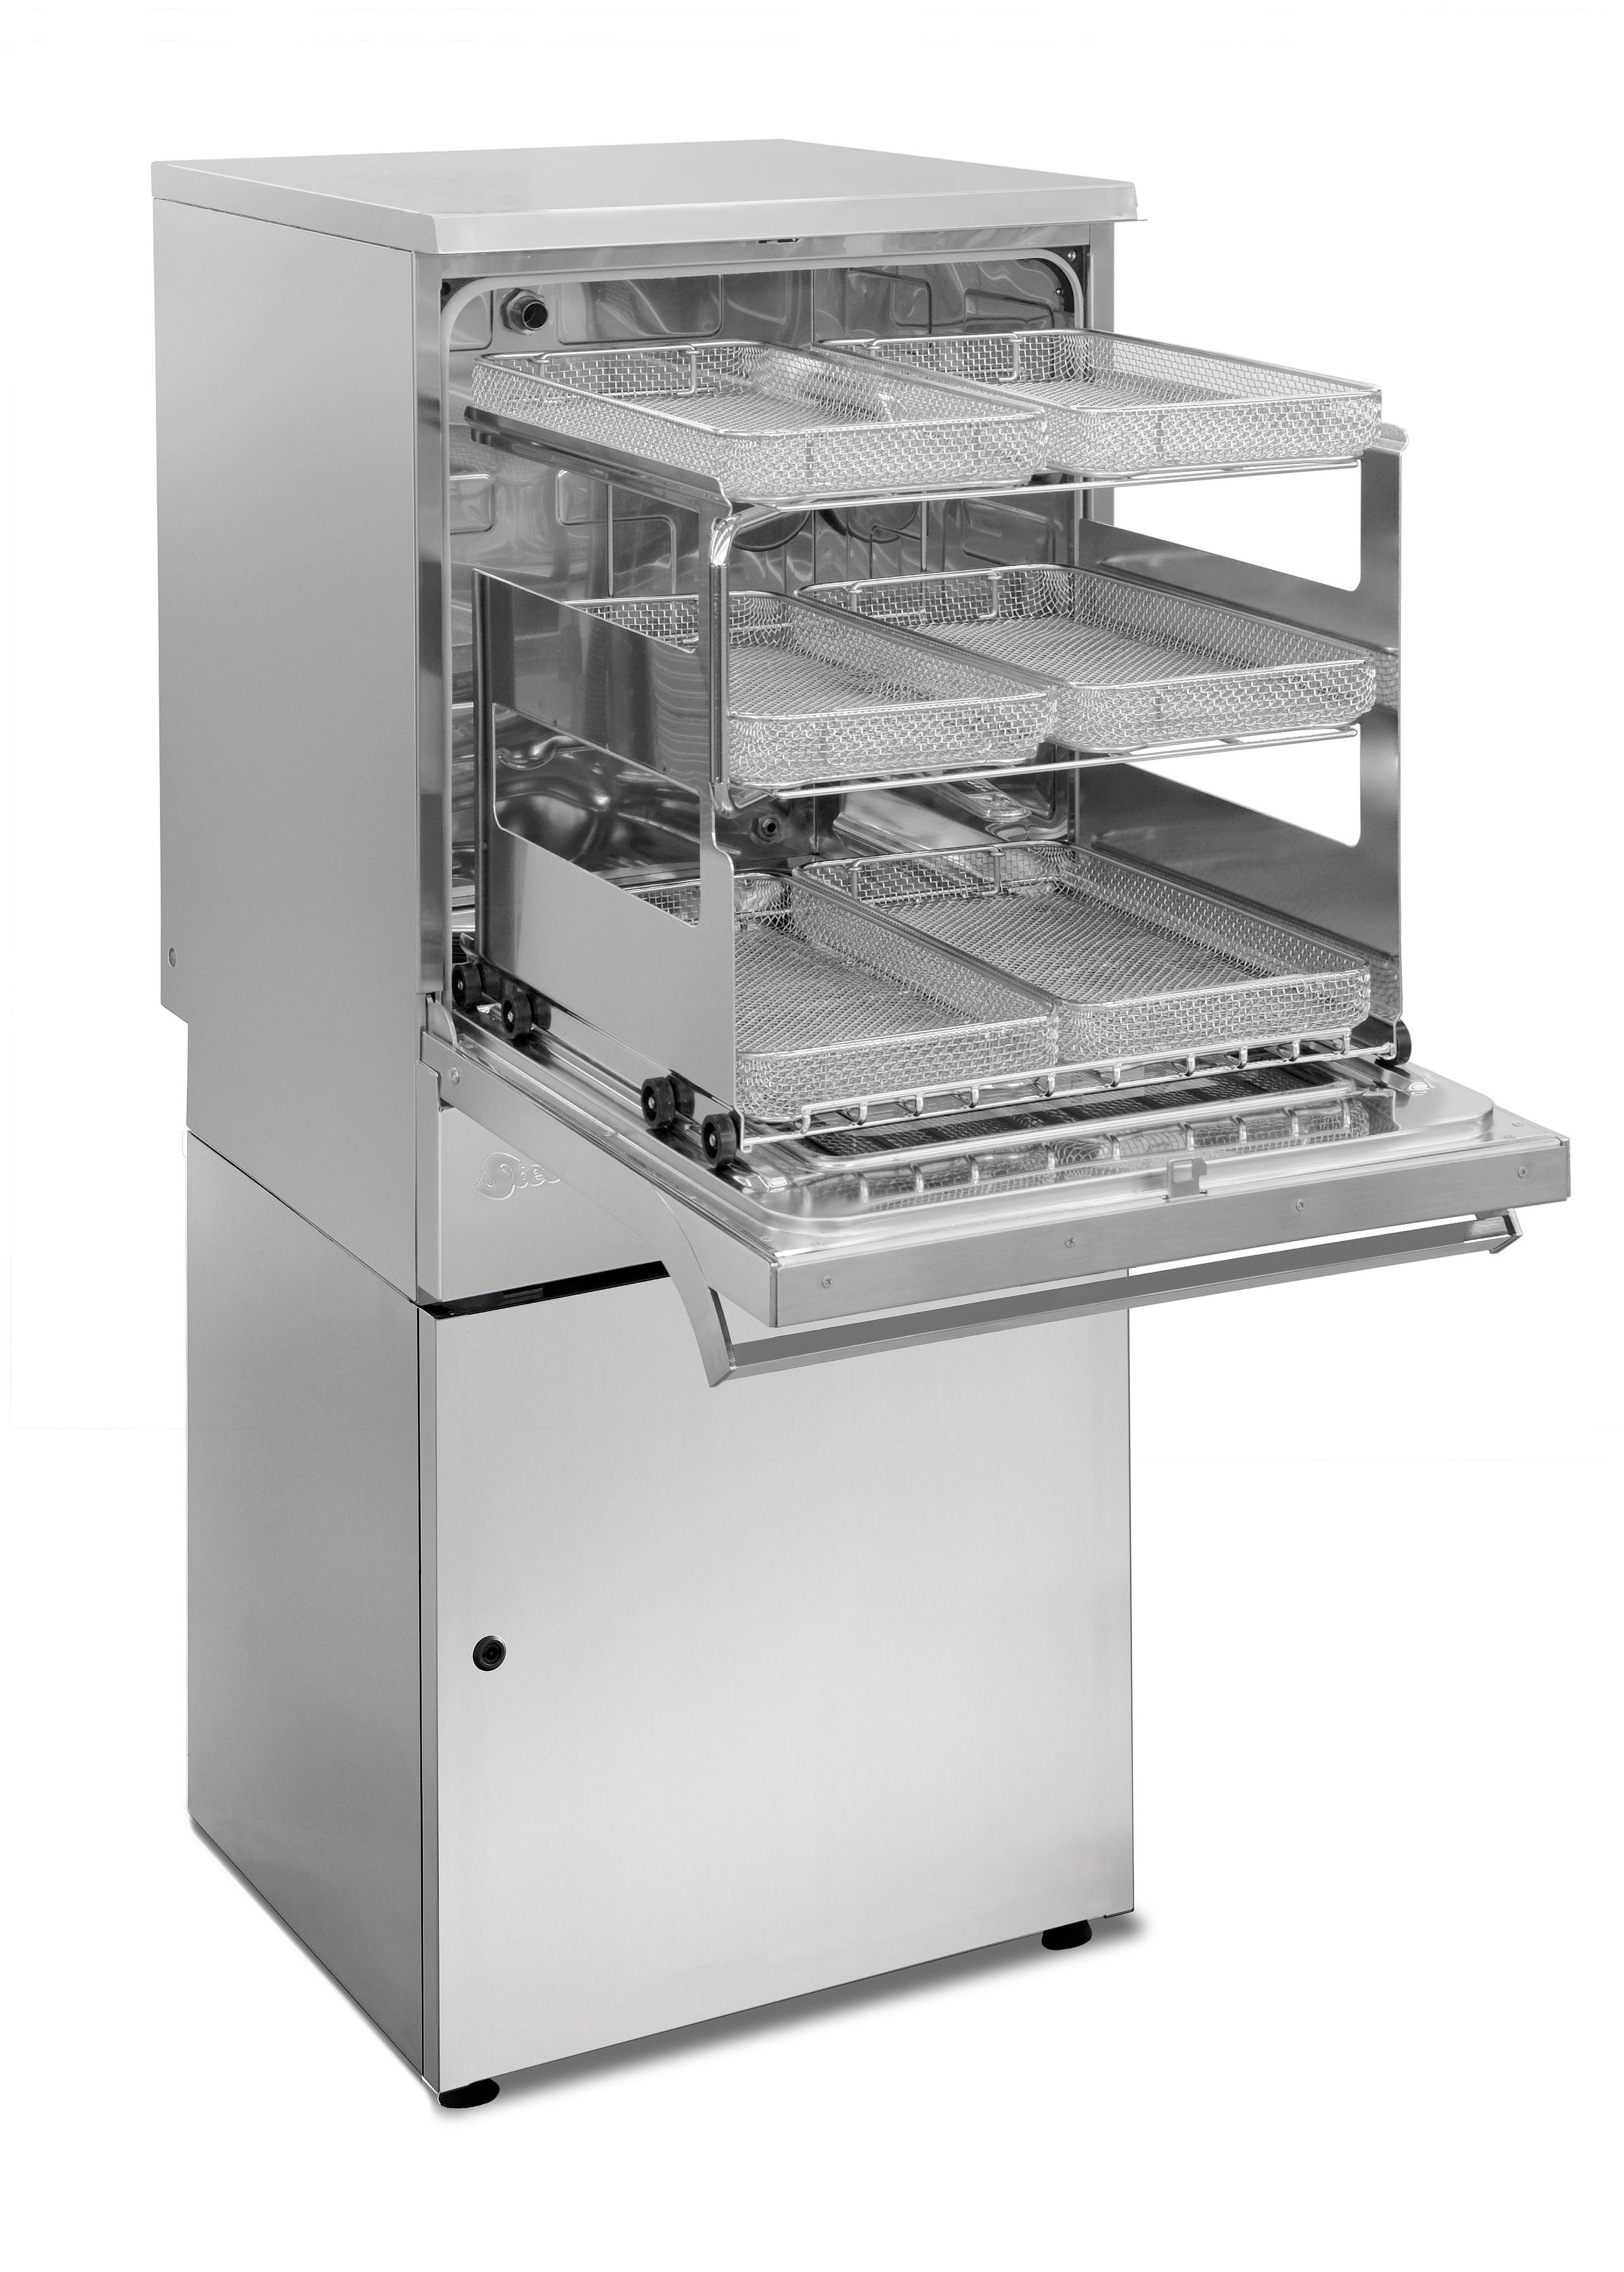 DS 500 CL full glass door with 600 mm stand.jpg